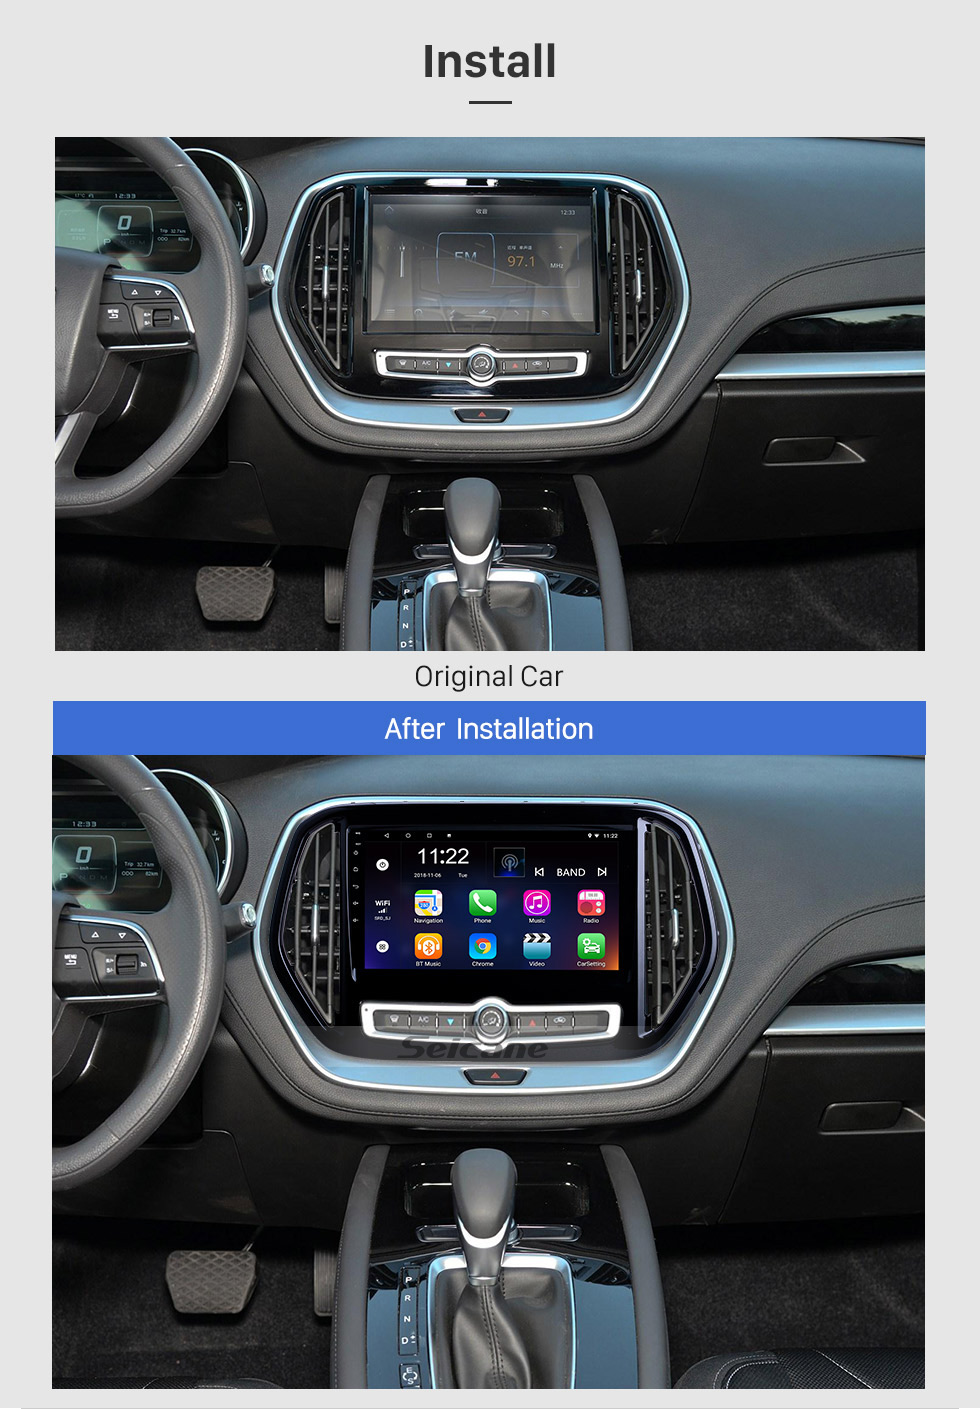 Seicane 10.1 inch Android 10.0 for 2019 2020 Chery Jetour X70 Radio GPS Navigation System With HD Touchscreen Bluetooth support Carplay Digital TV